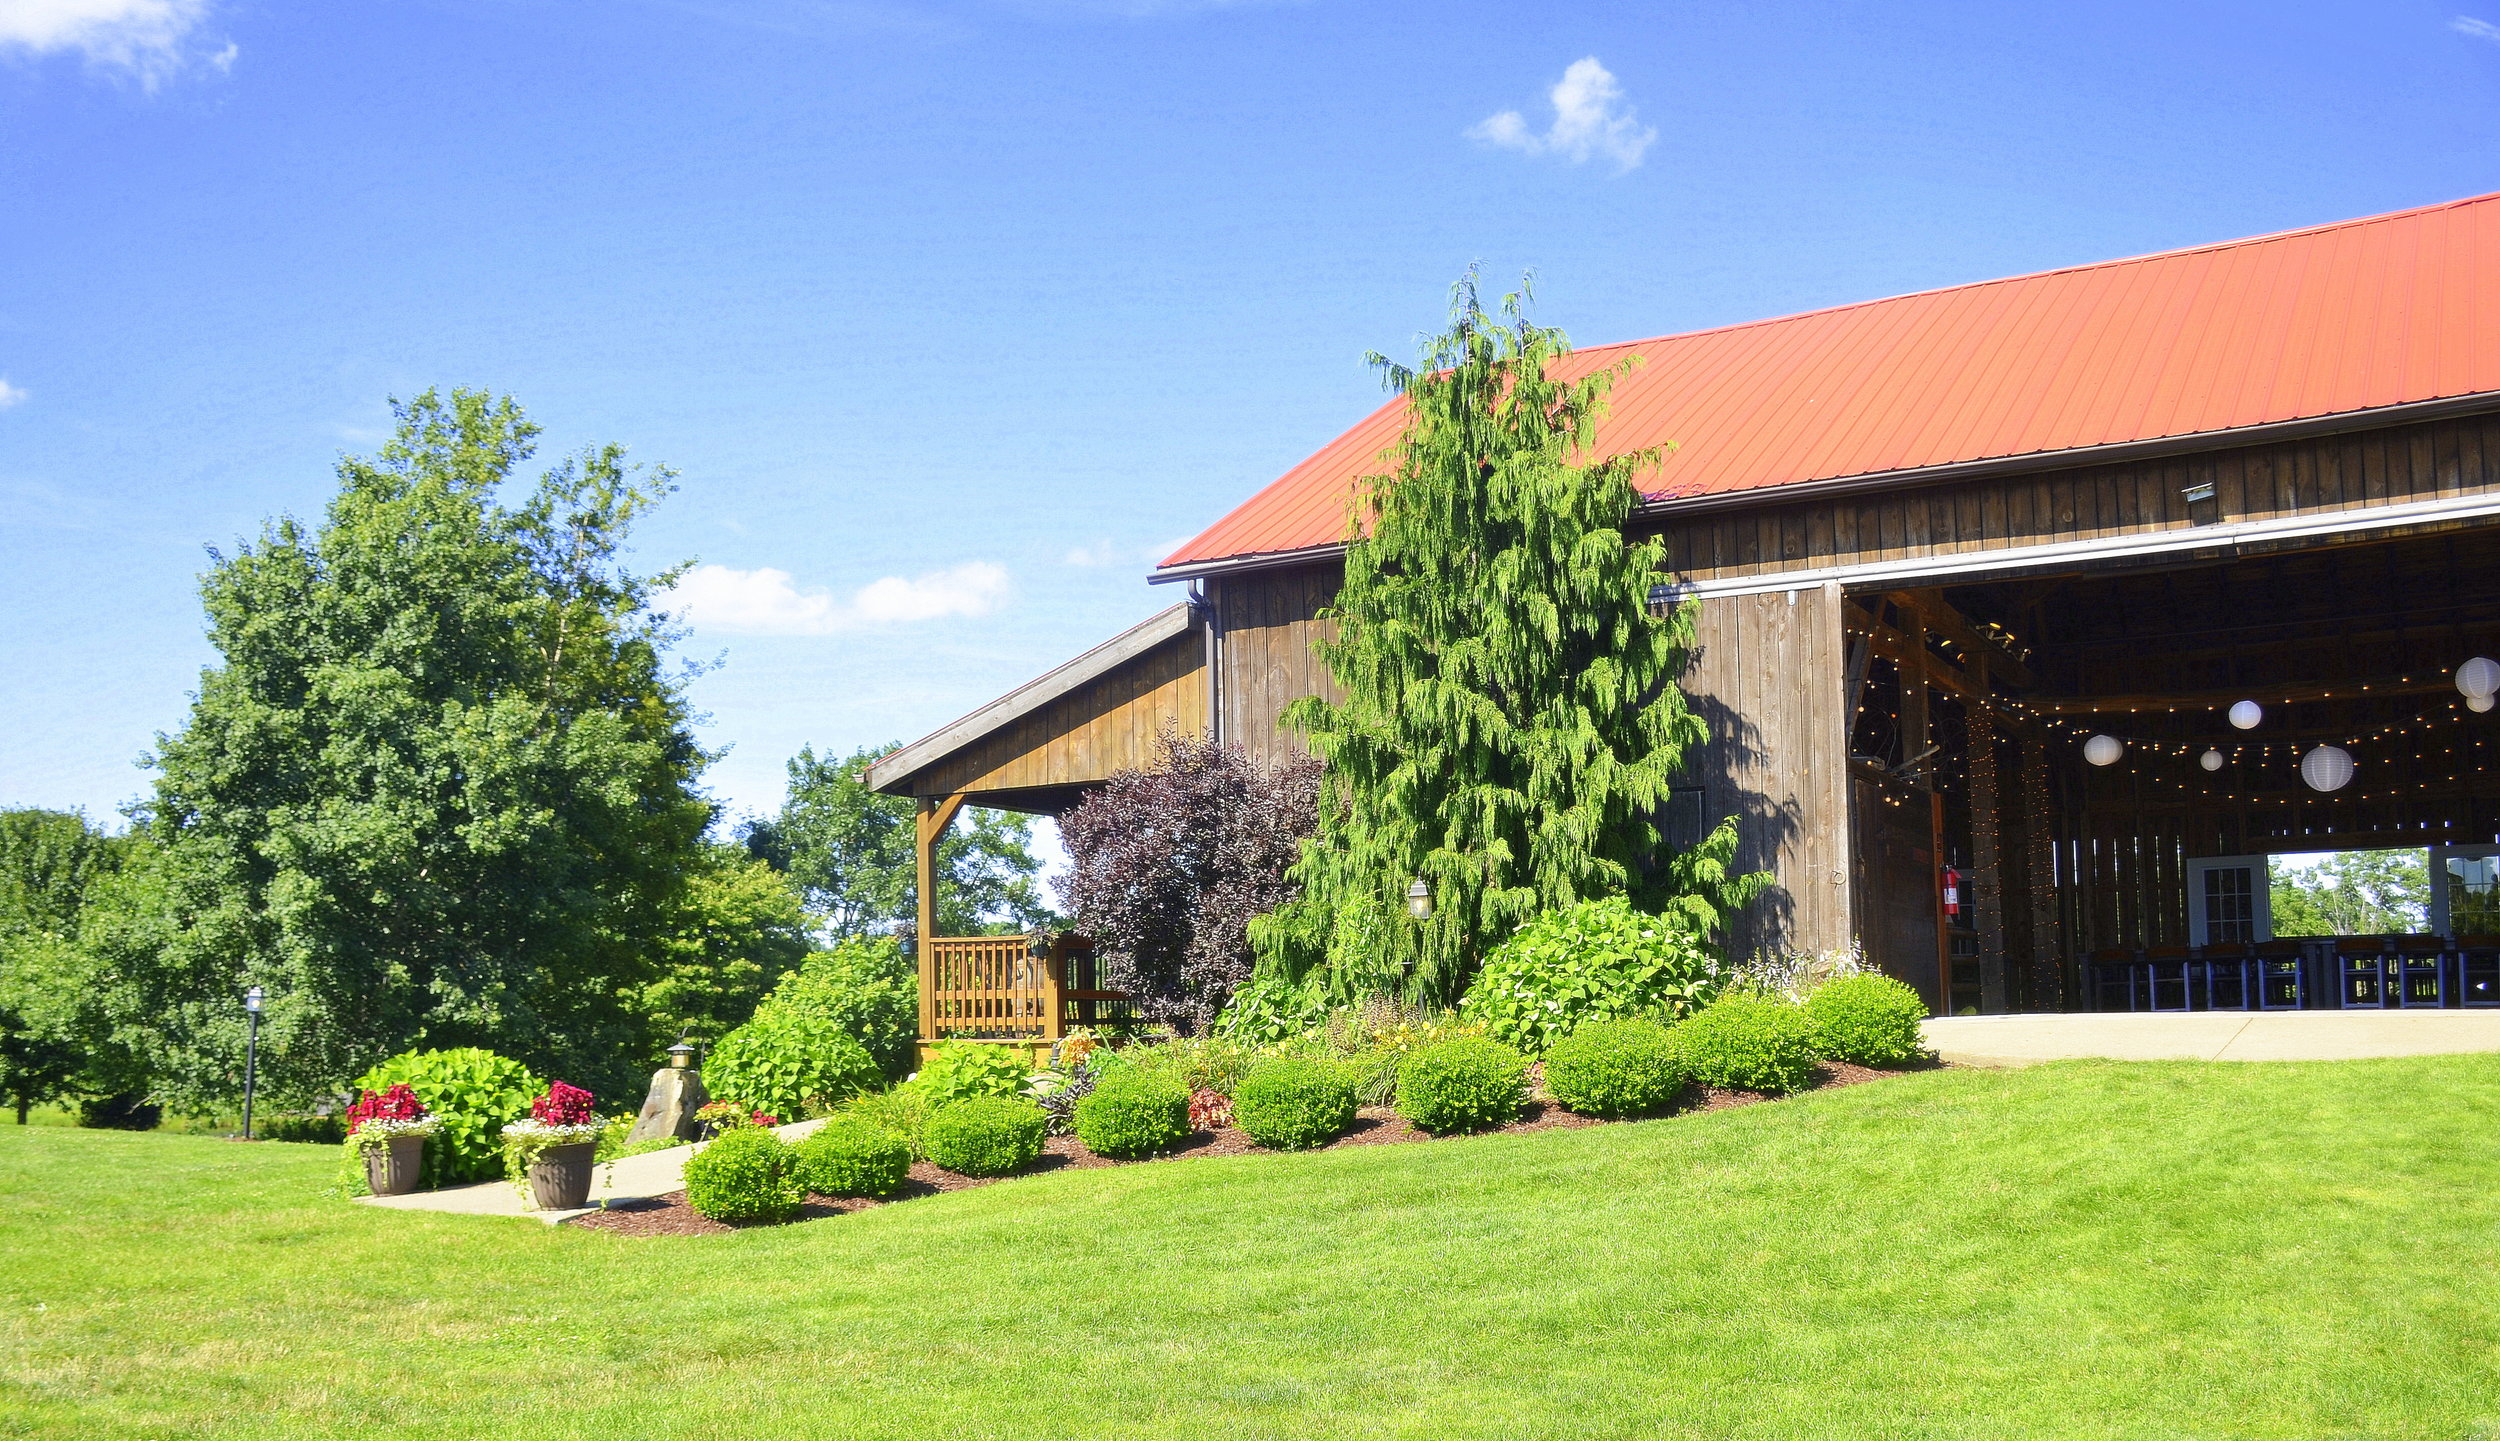 Armstrong+Farms_Barn3.jpg